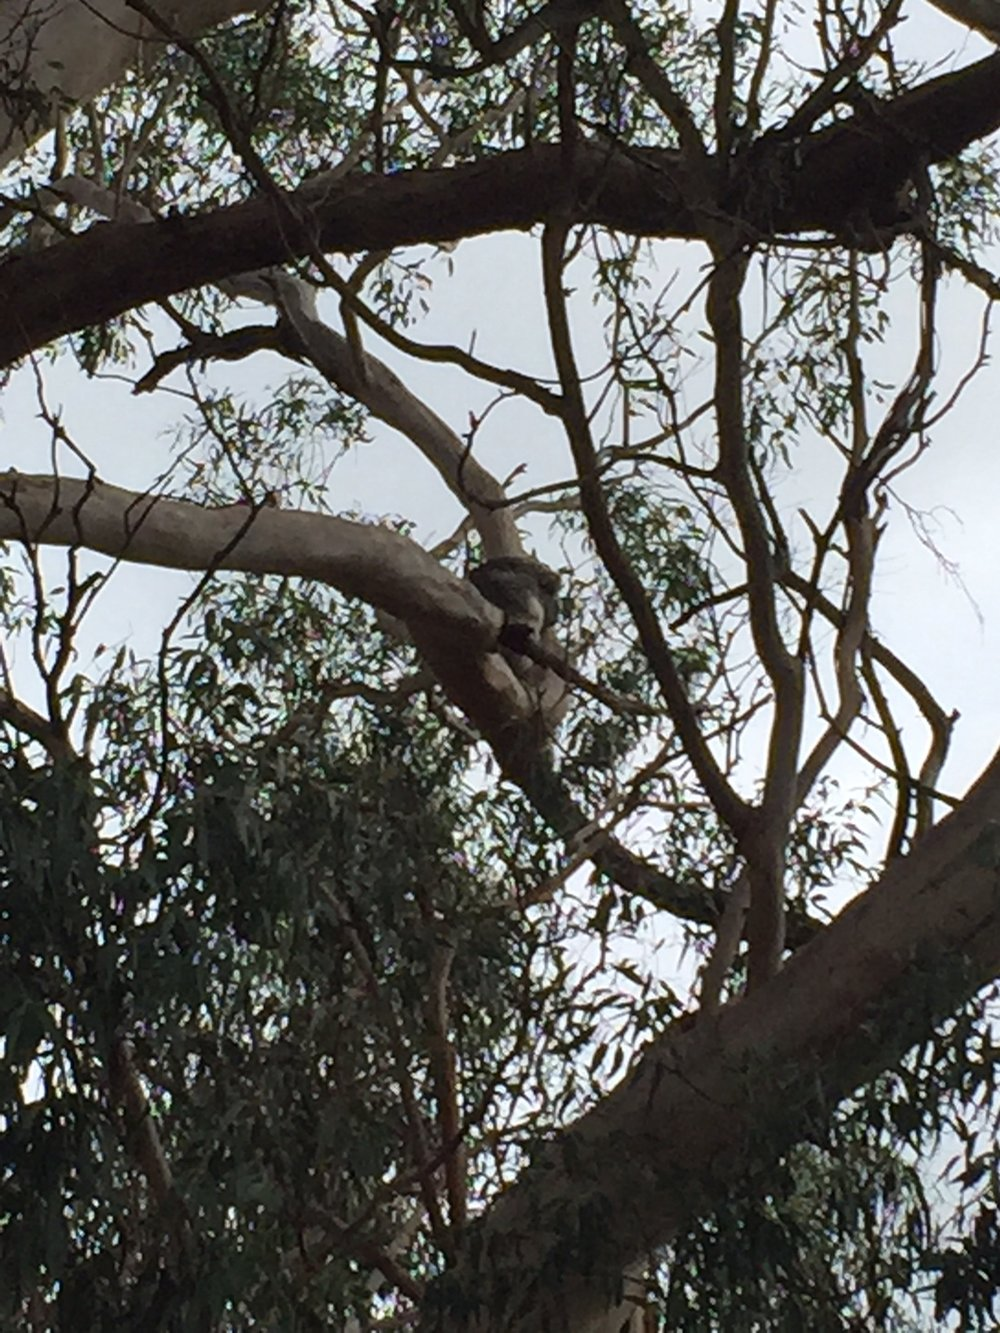 Can you spot the wine koala?